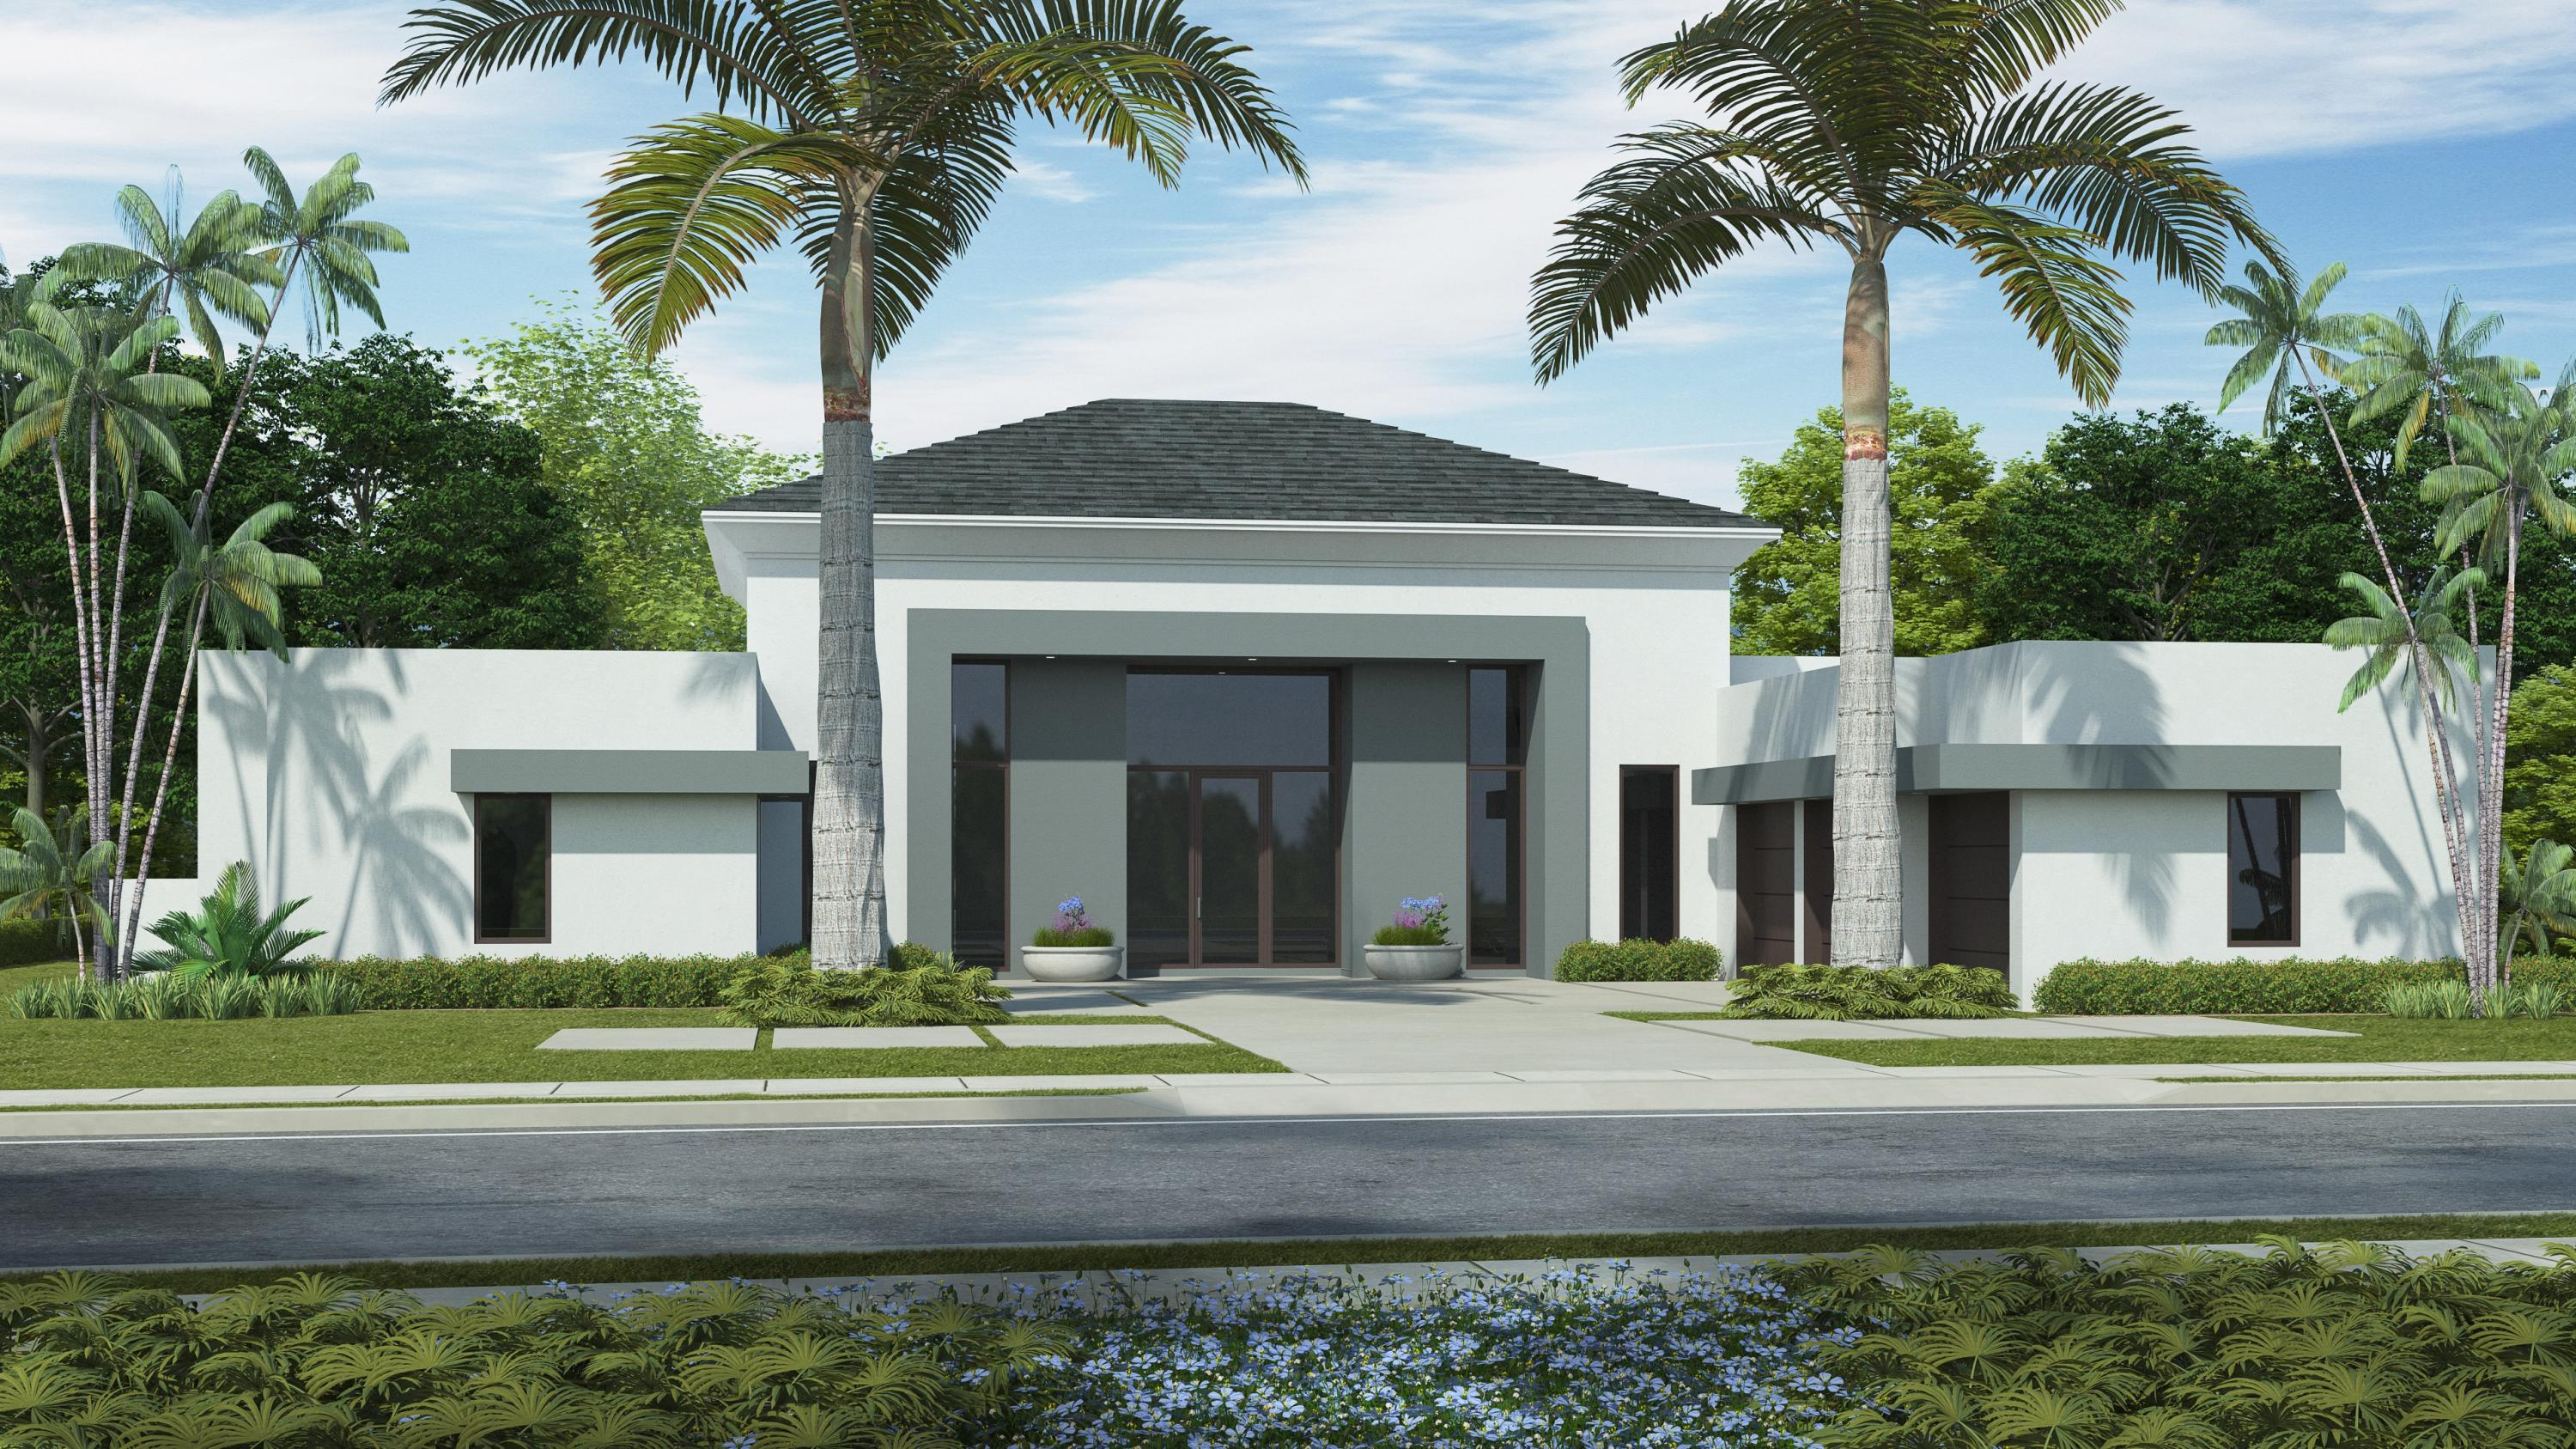 New Home for sale at 188 Commodore Drive in Jupiter